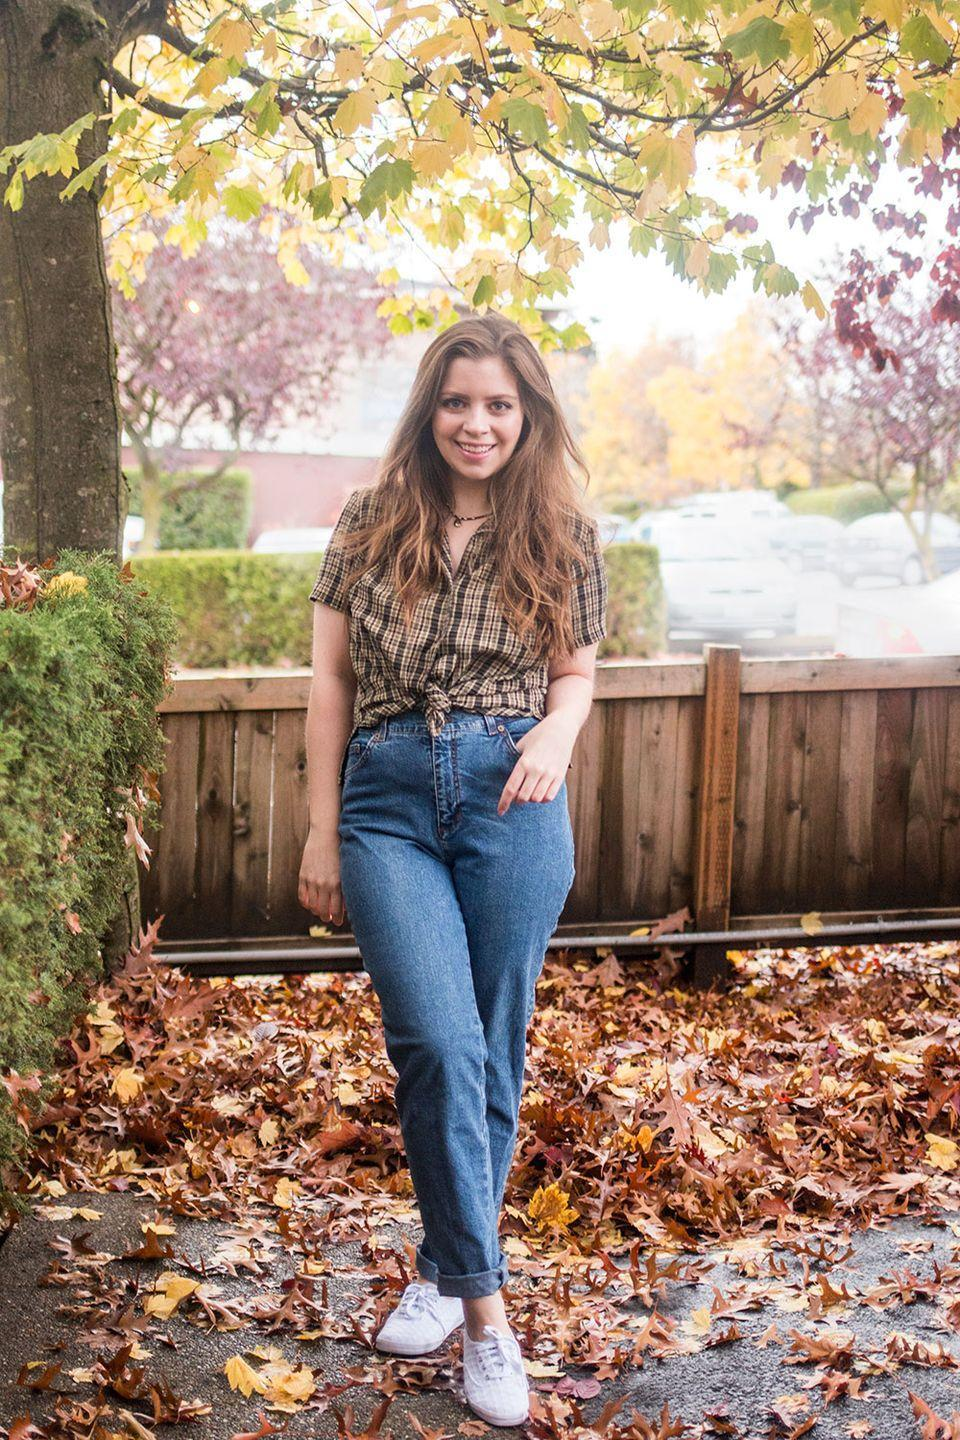 """<p>If you grew up watching <em>Boy Meets World</em>, you either had a crush on Topanga or you wanted to be her. Mimic her effortless style with a pair of mom jeans, sneakers and a tied plaid shirt. </p><p><em><a href=""""https://www.hellorigby.com/90s-costume-ideas/"""" rel=""""nofollow noopener"""" target=""""_blank"""" data-ylk=""""slk:Get the tutorial at Hello Rigby >>"""" class=""""link rapid-noclick-resp"""">Get the tutorial at Hello Rigby >></a></em></p>"""